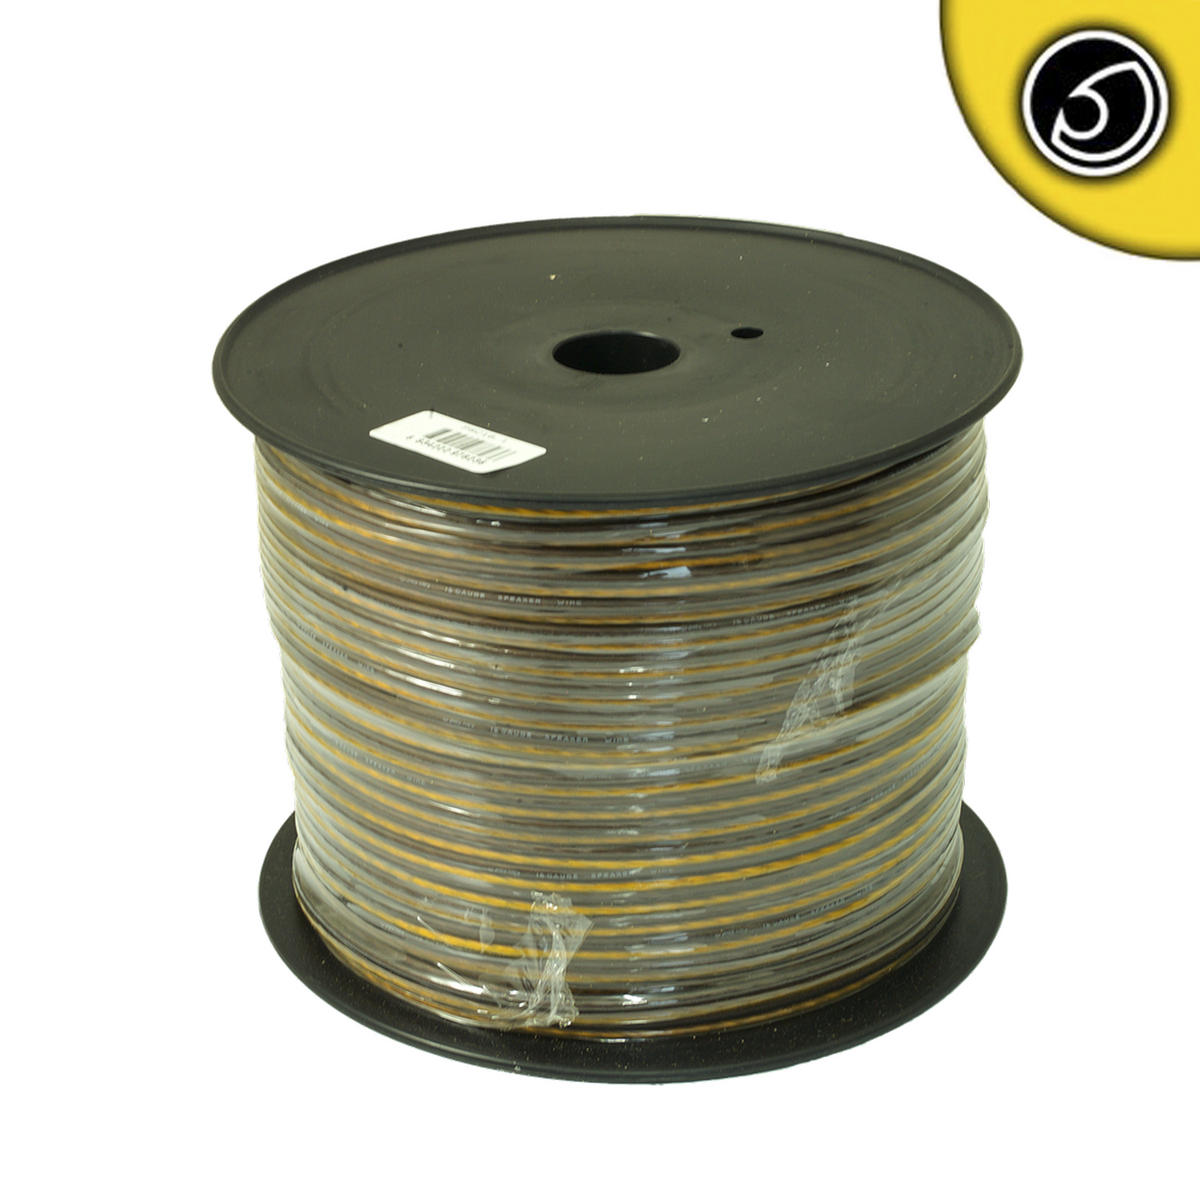 Bassface PSC16.1 150m Roll 16AWG 1.5mm 15% CCA Speaker Cable 112 Strand